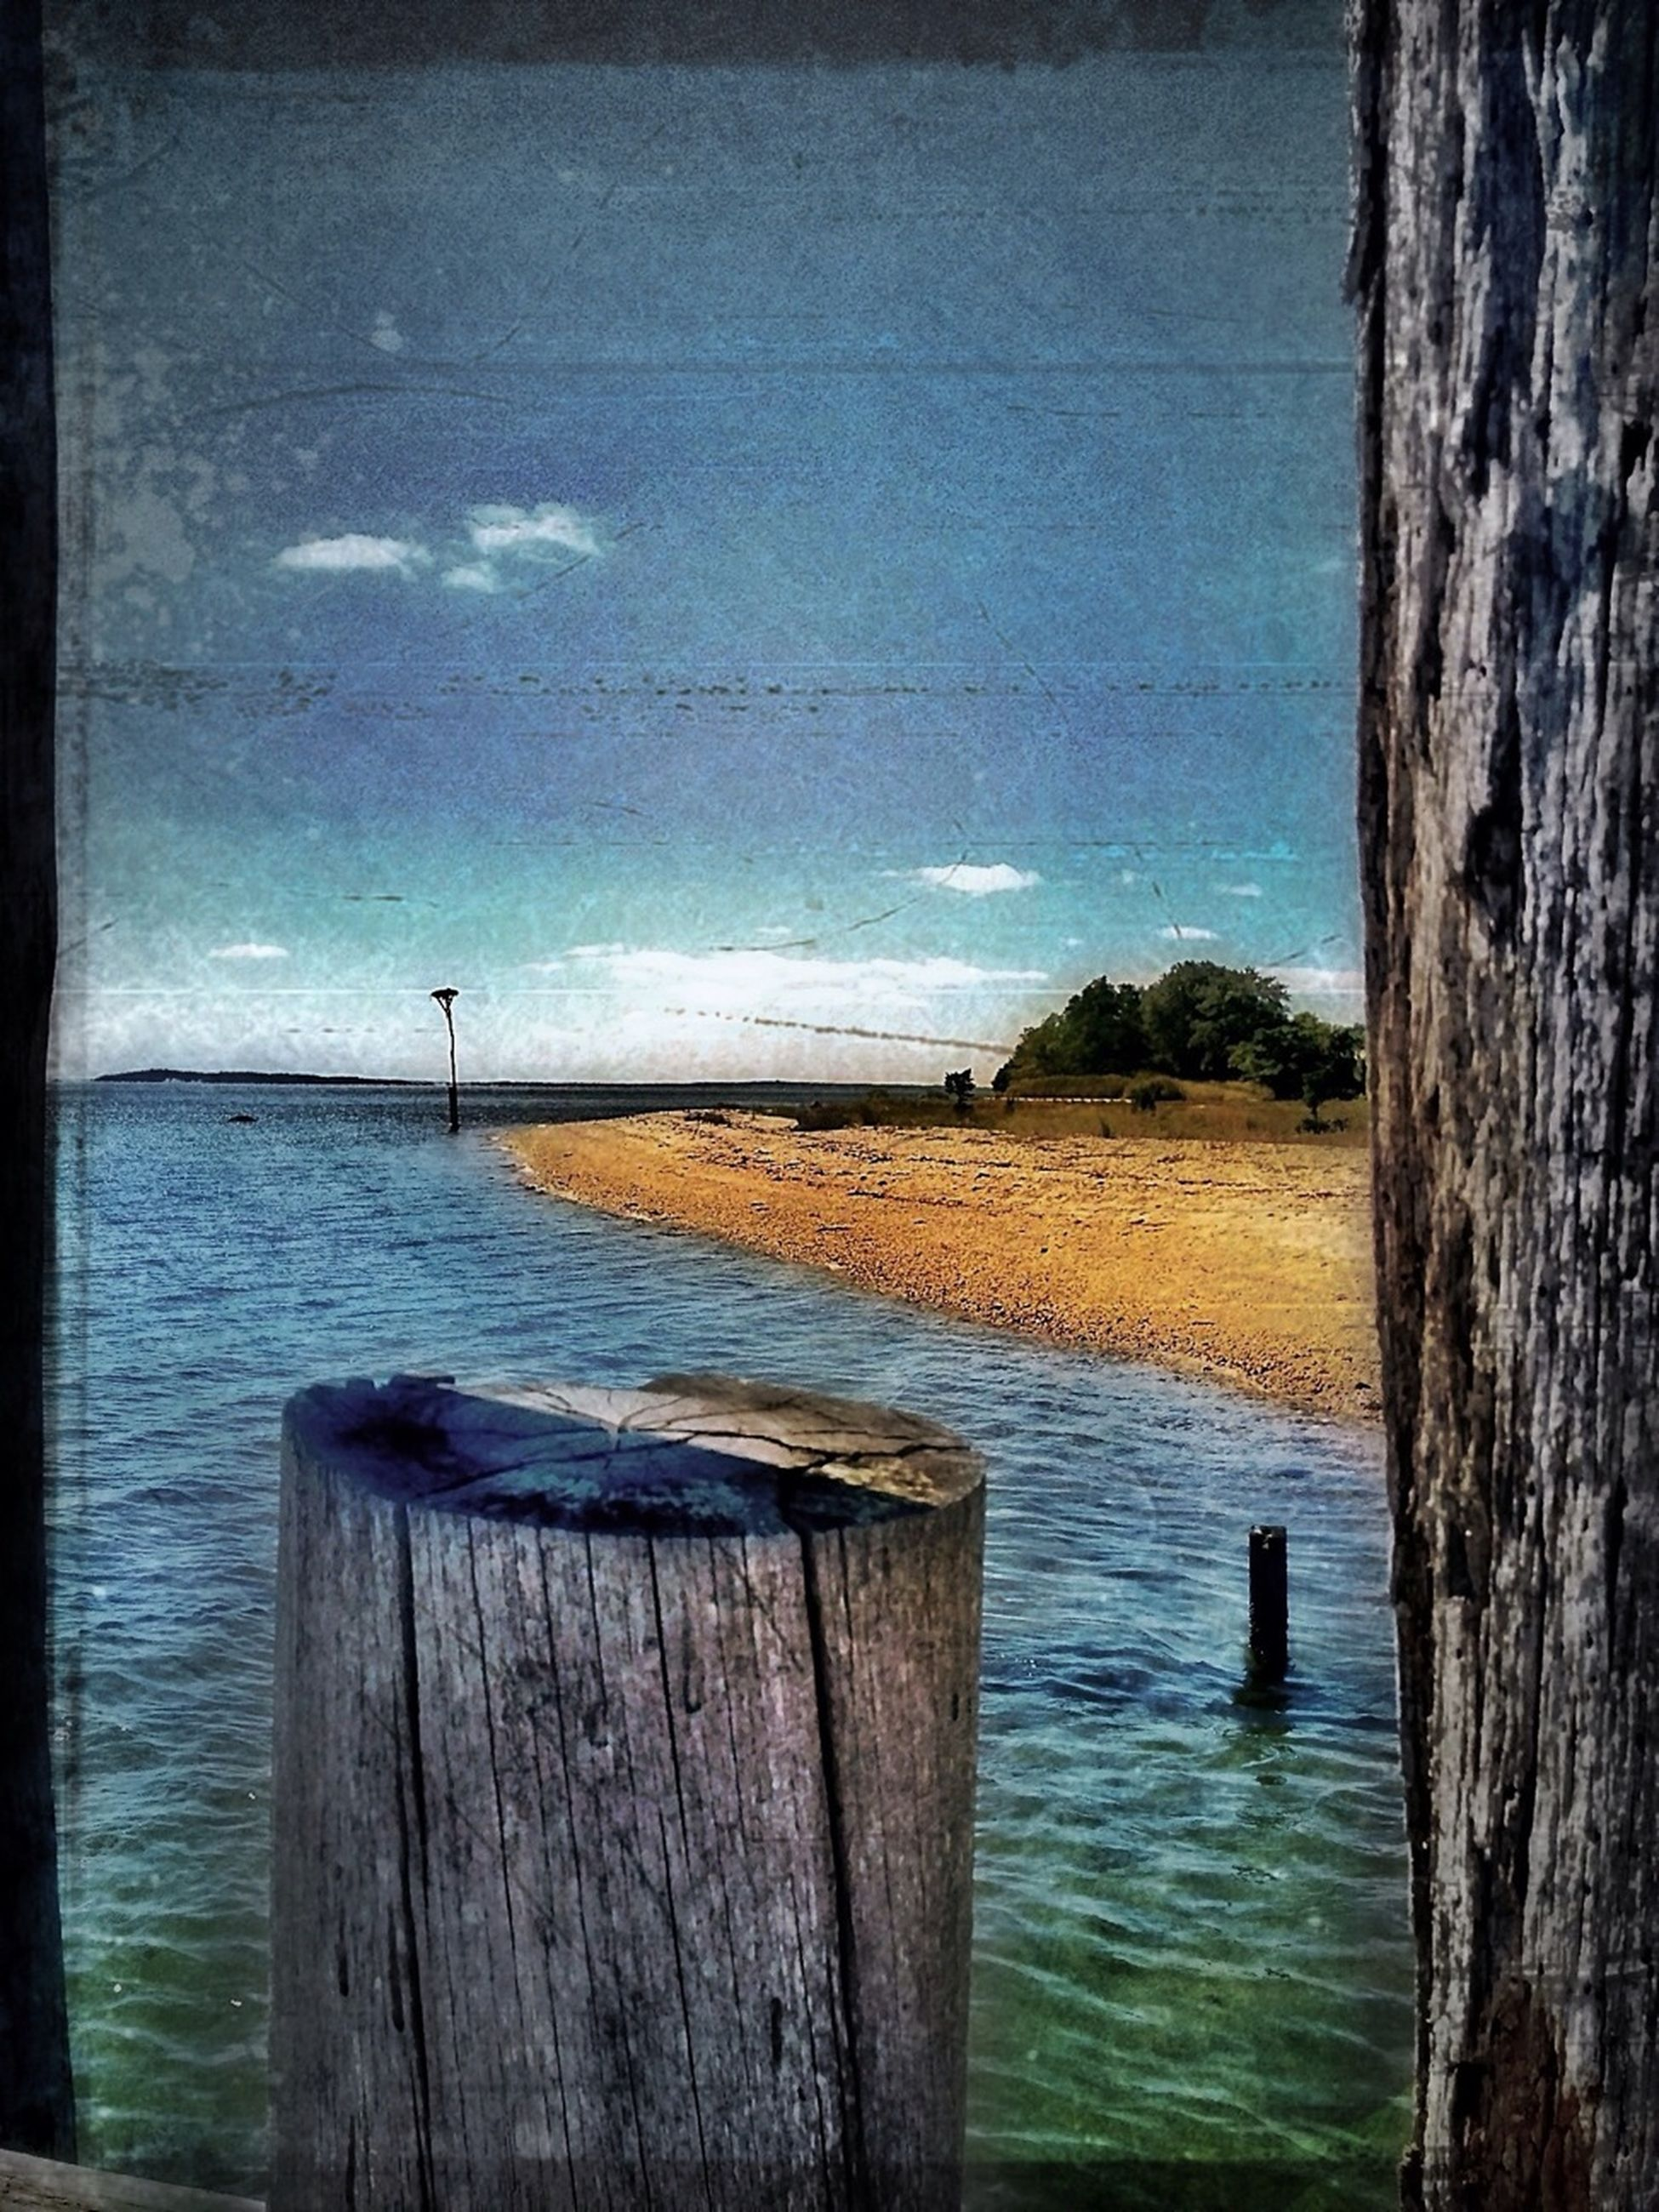 water, sea, tranquil scene, tranquility, wood - material, horizon over water, sky, scenics, beauty in nature, nature, blue, wood, wooden post, wooden, idyllic, beach, pier, cloud, ocean, calm